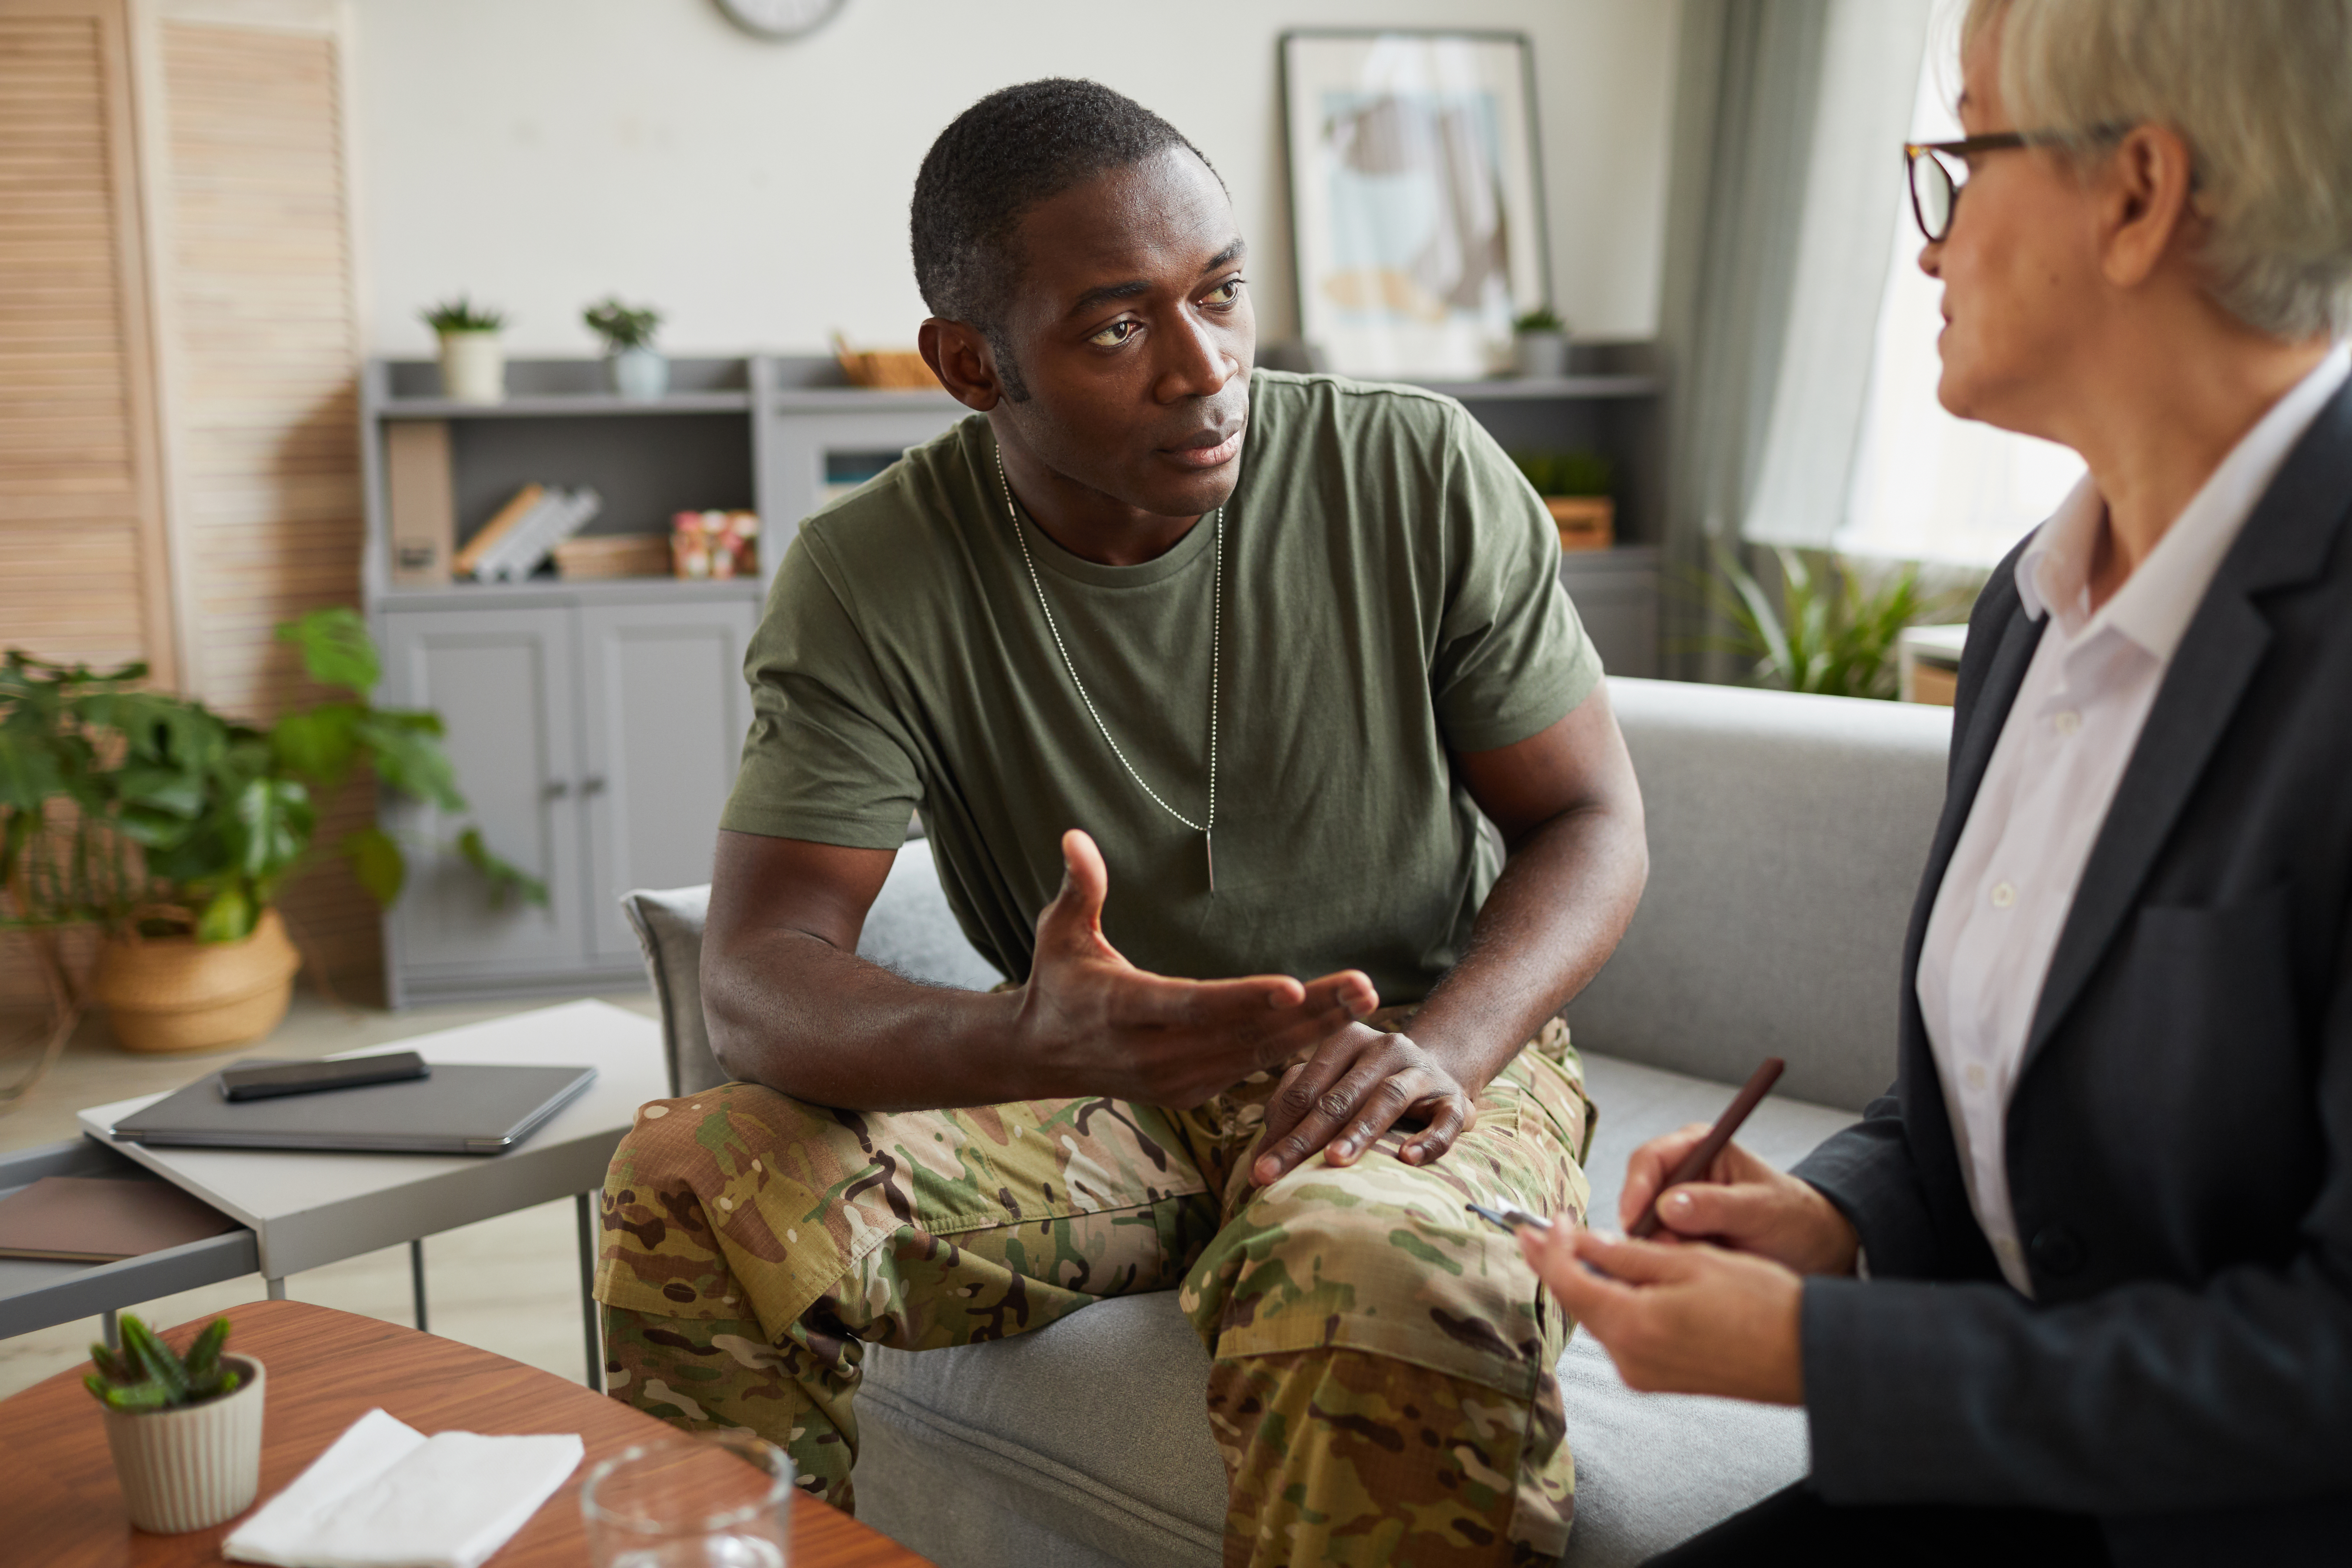 soldier-during-counseling-session-KG485NW-1